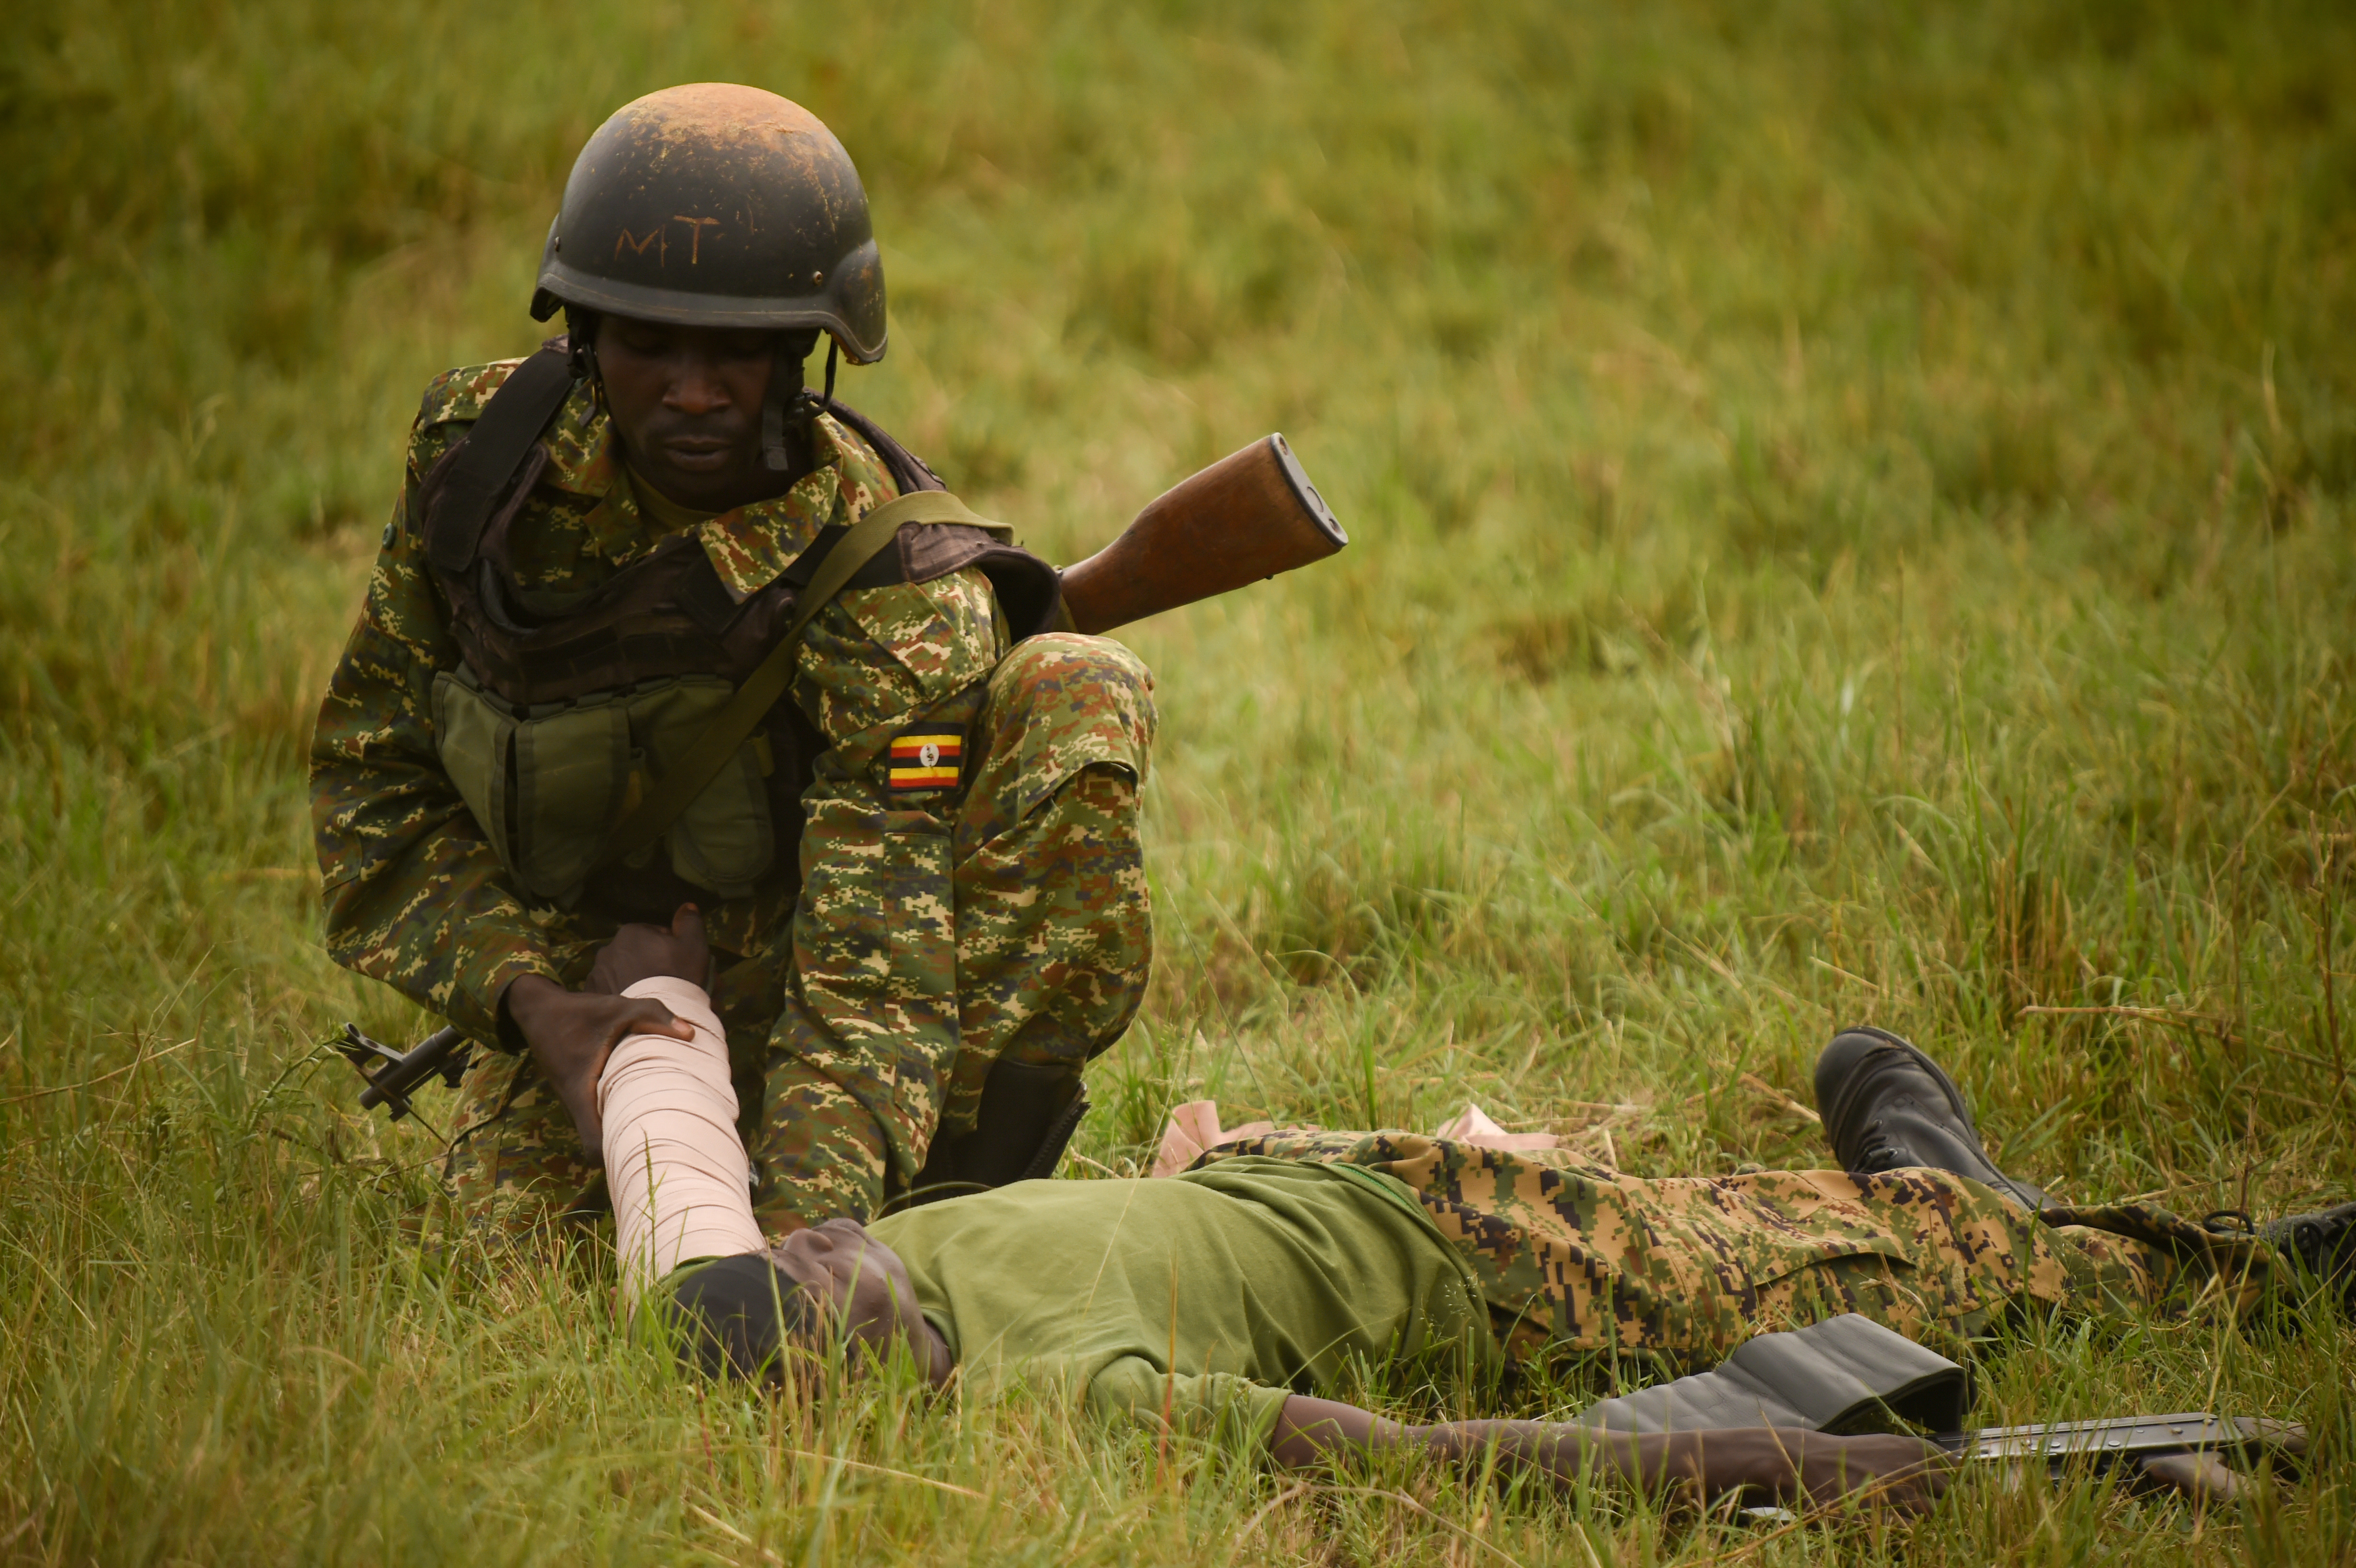 A Uganda People's Defense Force (UPDF) soldier with Ugandan Battle Group 22, applies an improvised splint during a medical exercise at Camp Singo, Uganda, March 3, 2017. Up to 25 percent of deaths on the battlefield are preventable. Administering swift medical attention on the battlefield and in transport greatly improves the survival rate of casualties. (U.S. Air National Guard photo by Staff Sgt. Penny Snoozy)